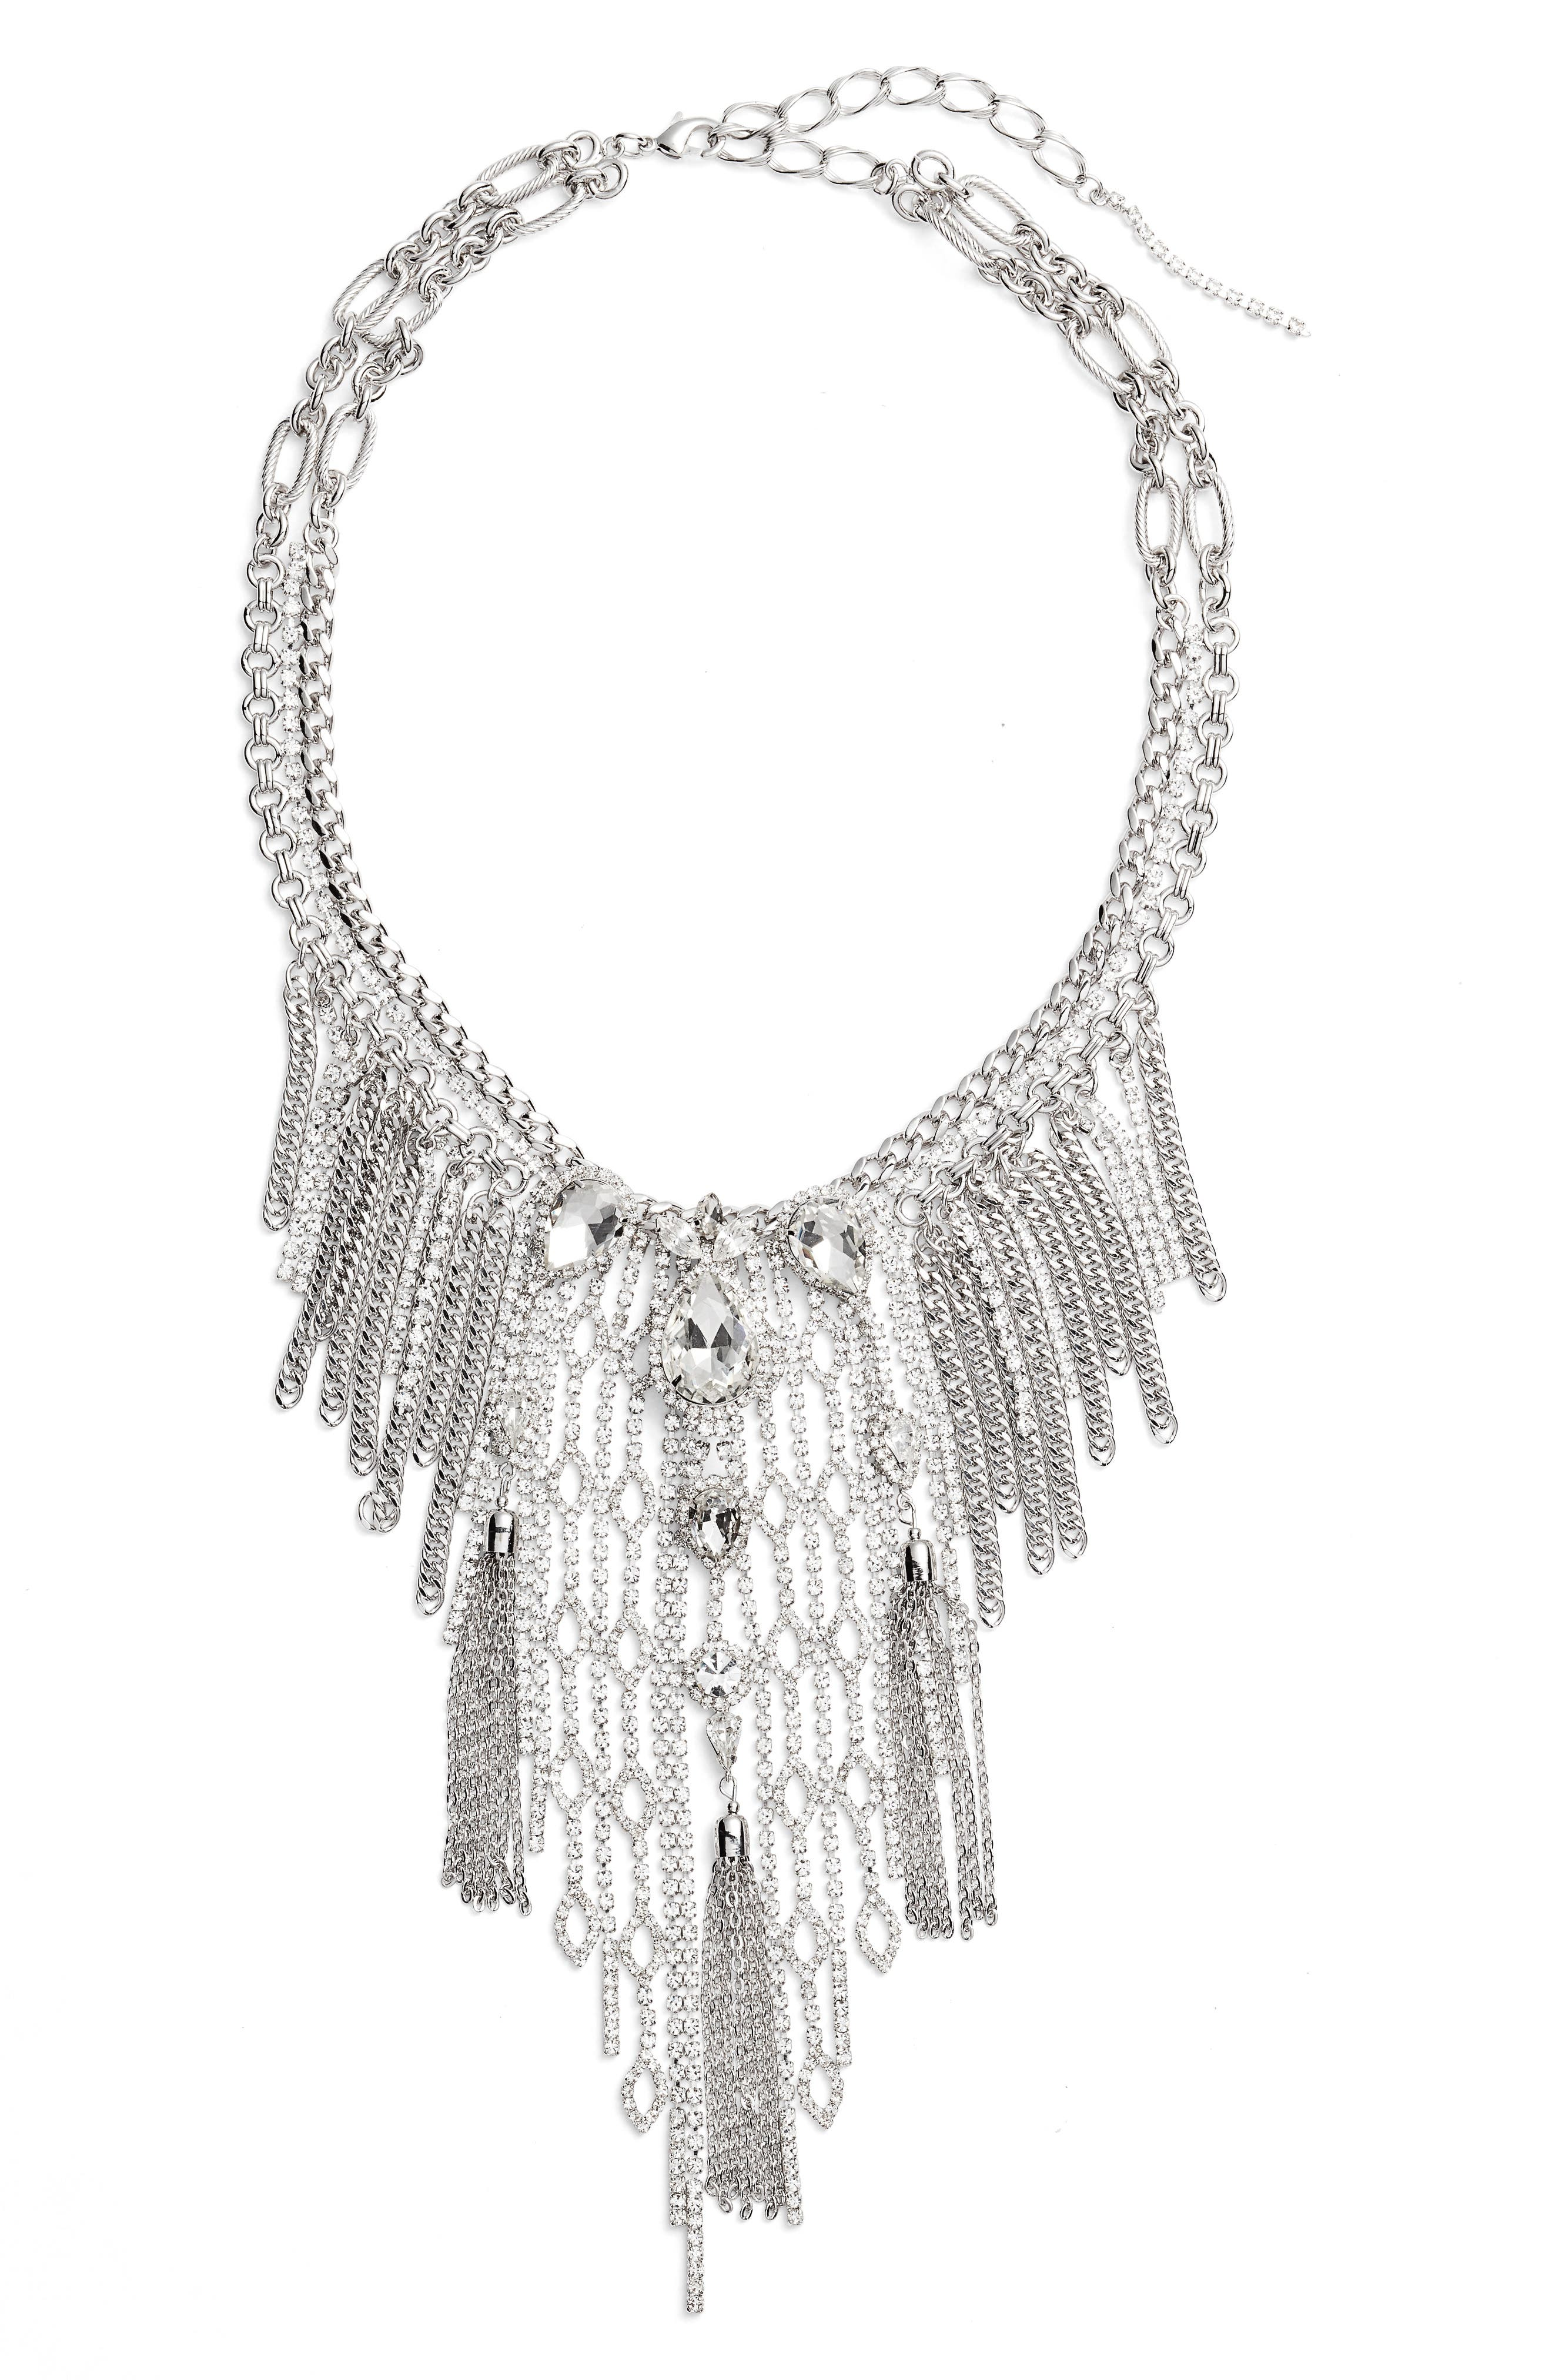 Main Image - CRISTABELLE Chain Fringe Necklace